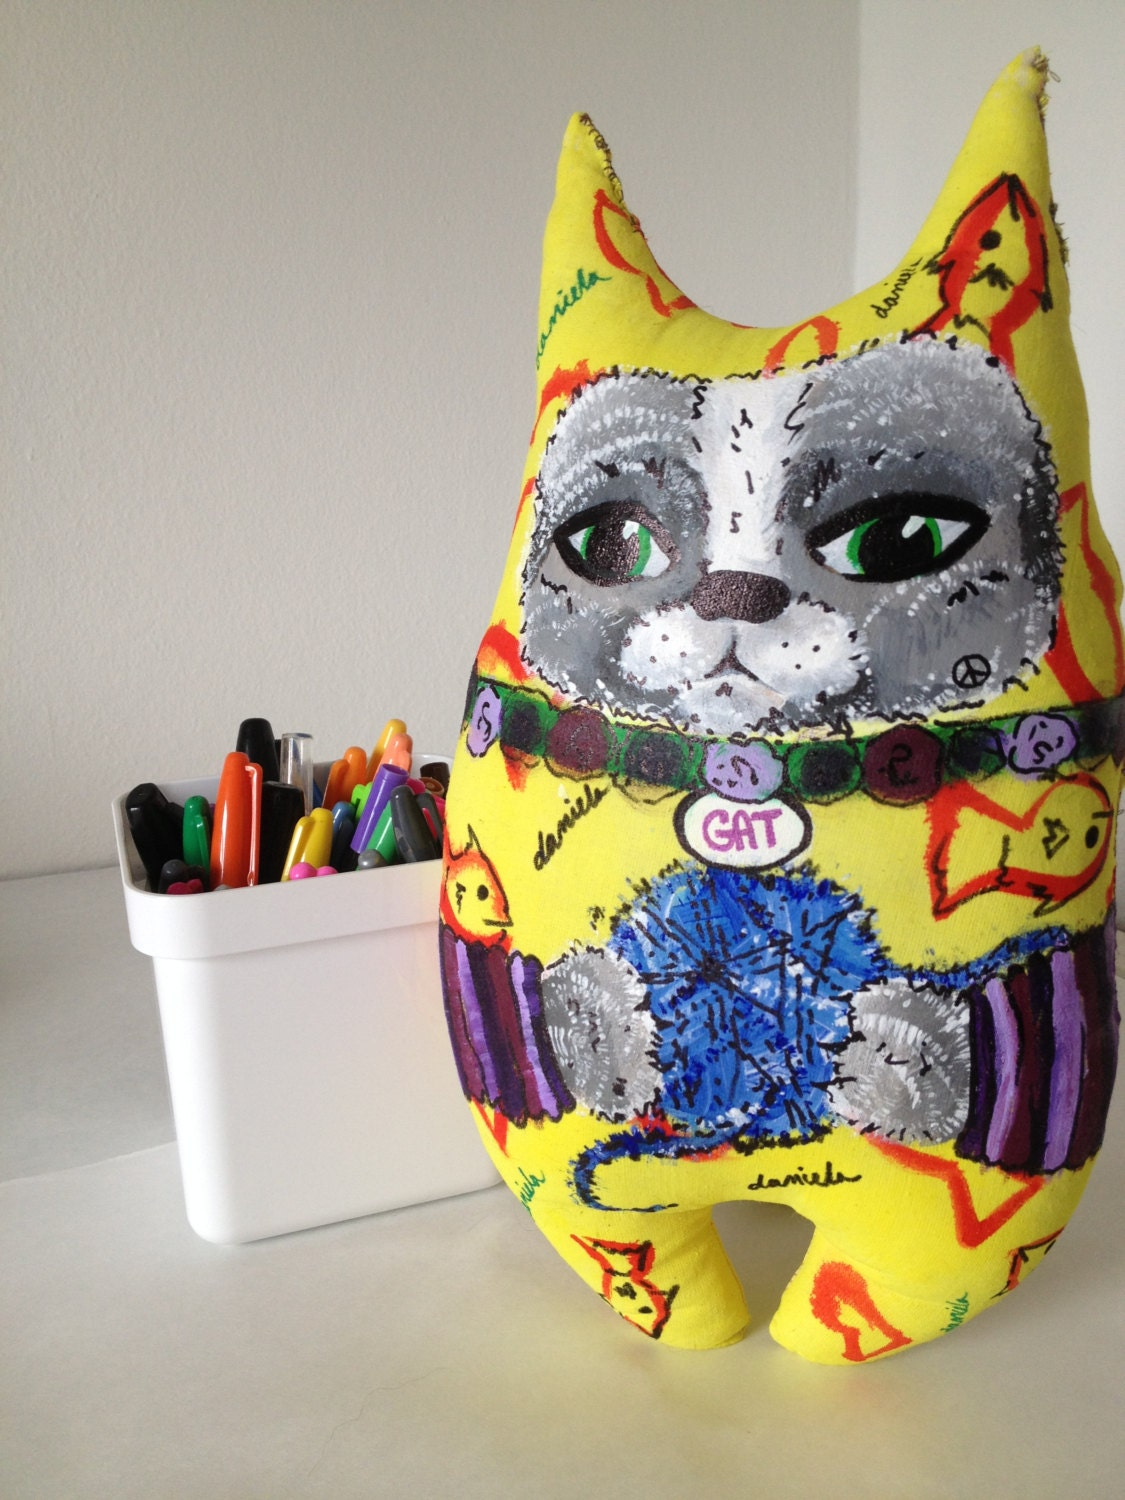 Gat the Cat Coixi - Yellow bodysuit with blue yarn ball - hand-painted soft sculpture doll - Coixi